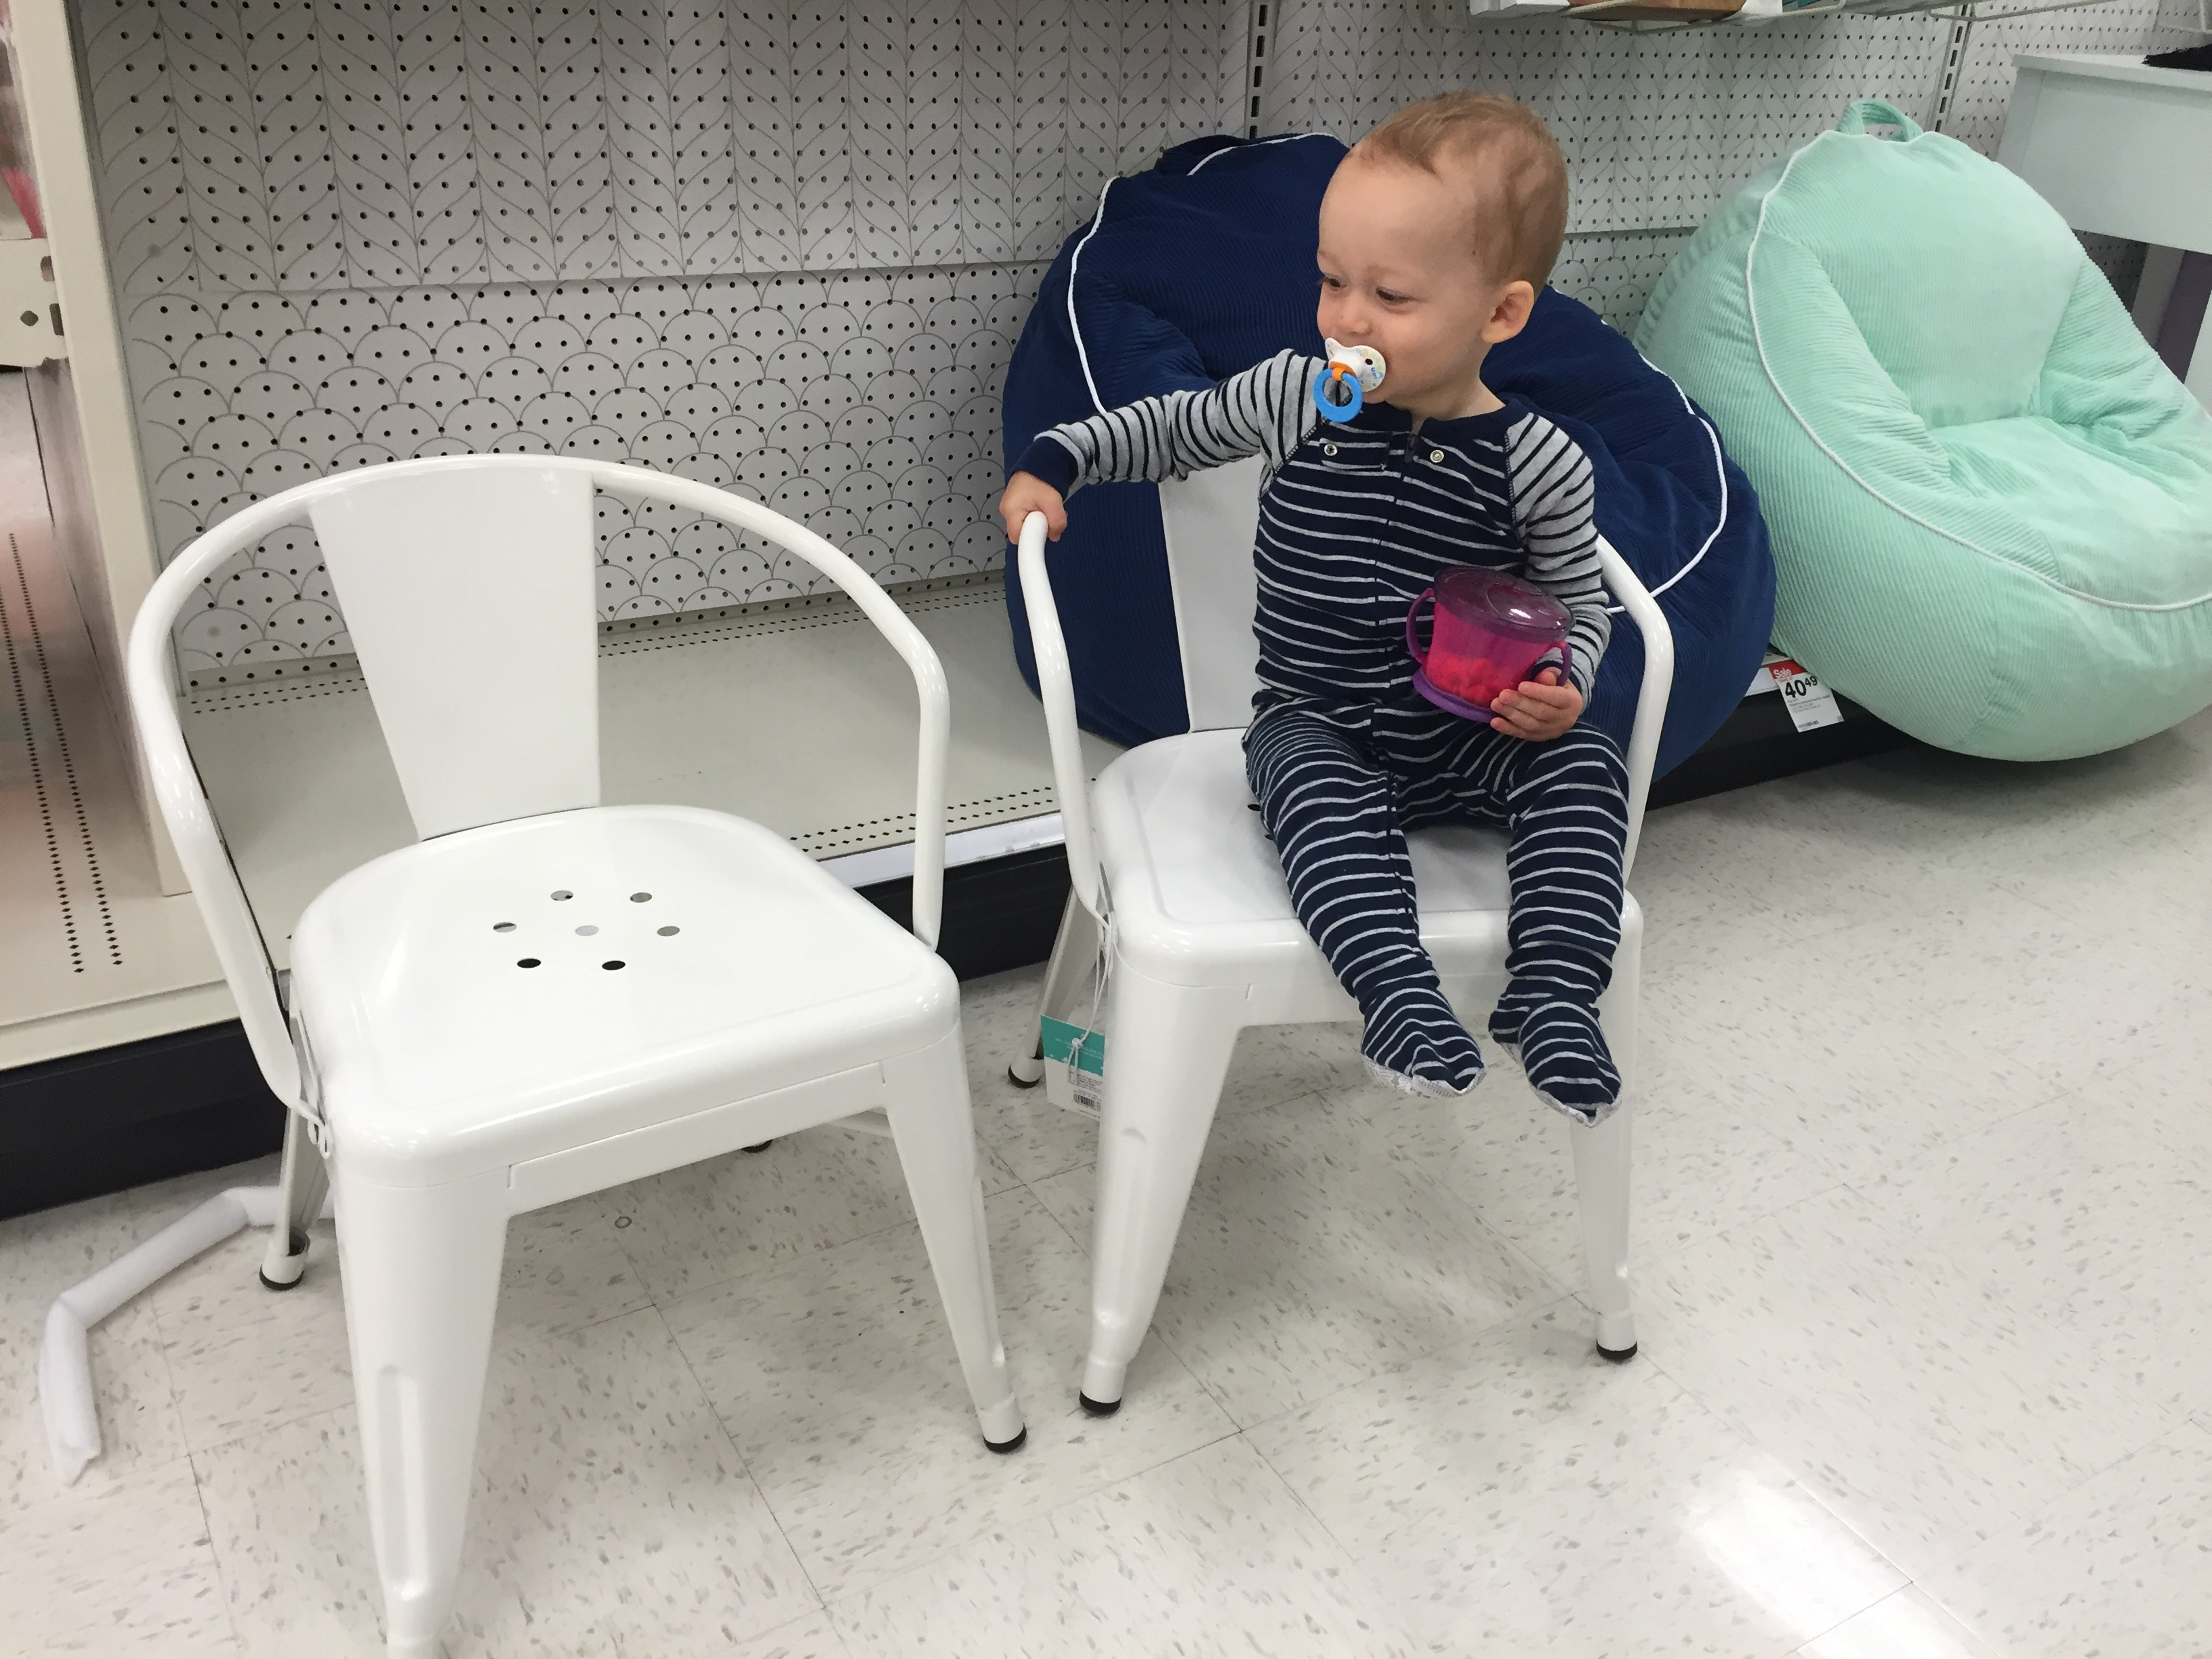 These Industrial Cafe Chairs Are Standard Size. They Are In The Kids  Section, But Can Totally Be Used For Adults Too. These Would Be Great As A  Desk Chair, ...